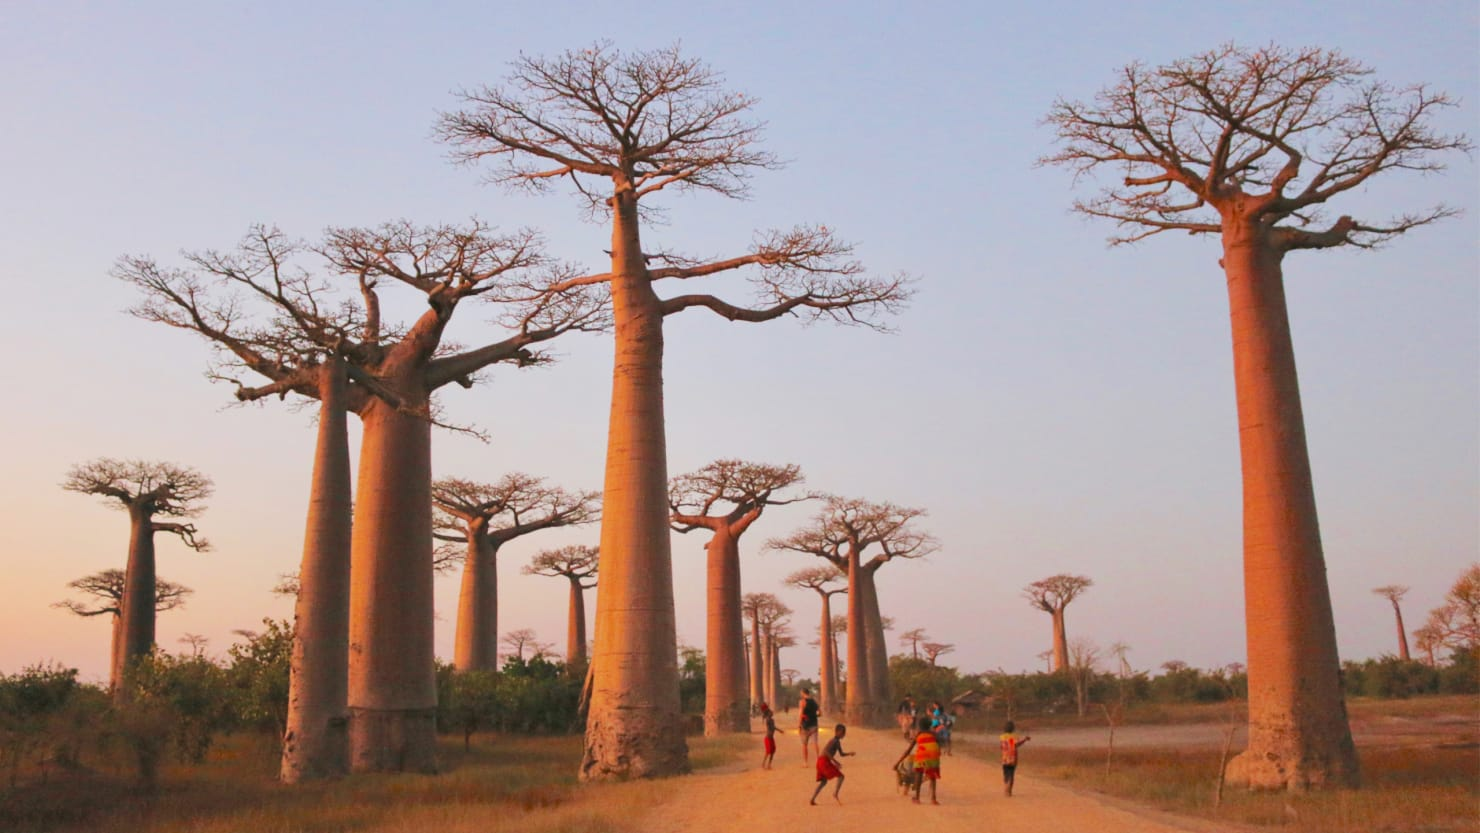 I Fell in Love With Madagascar and Its Sacred Trees